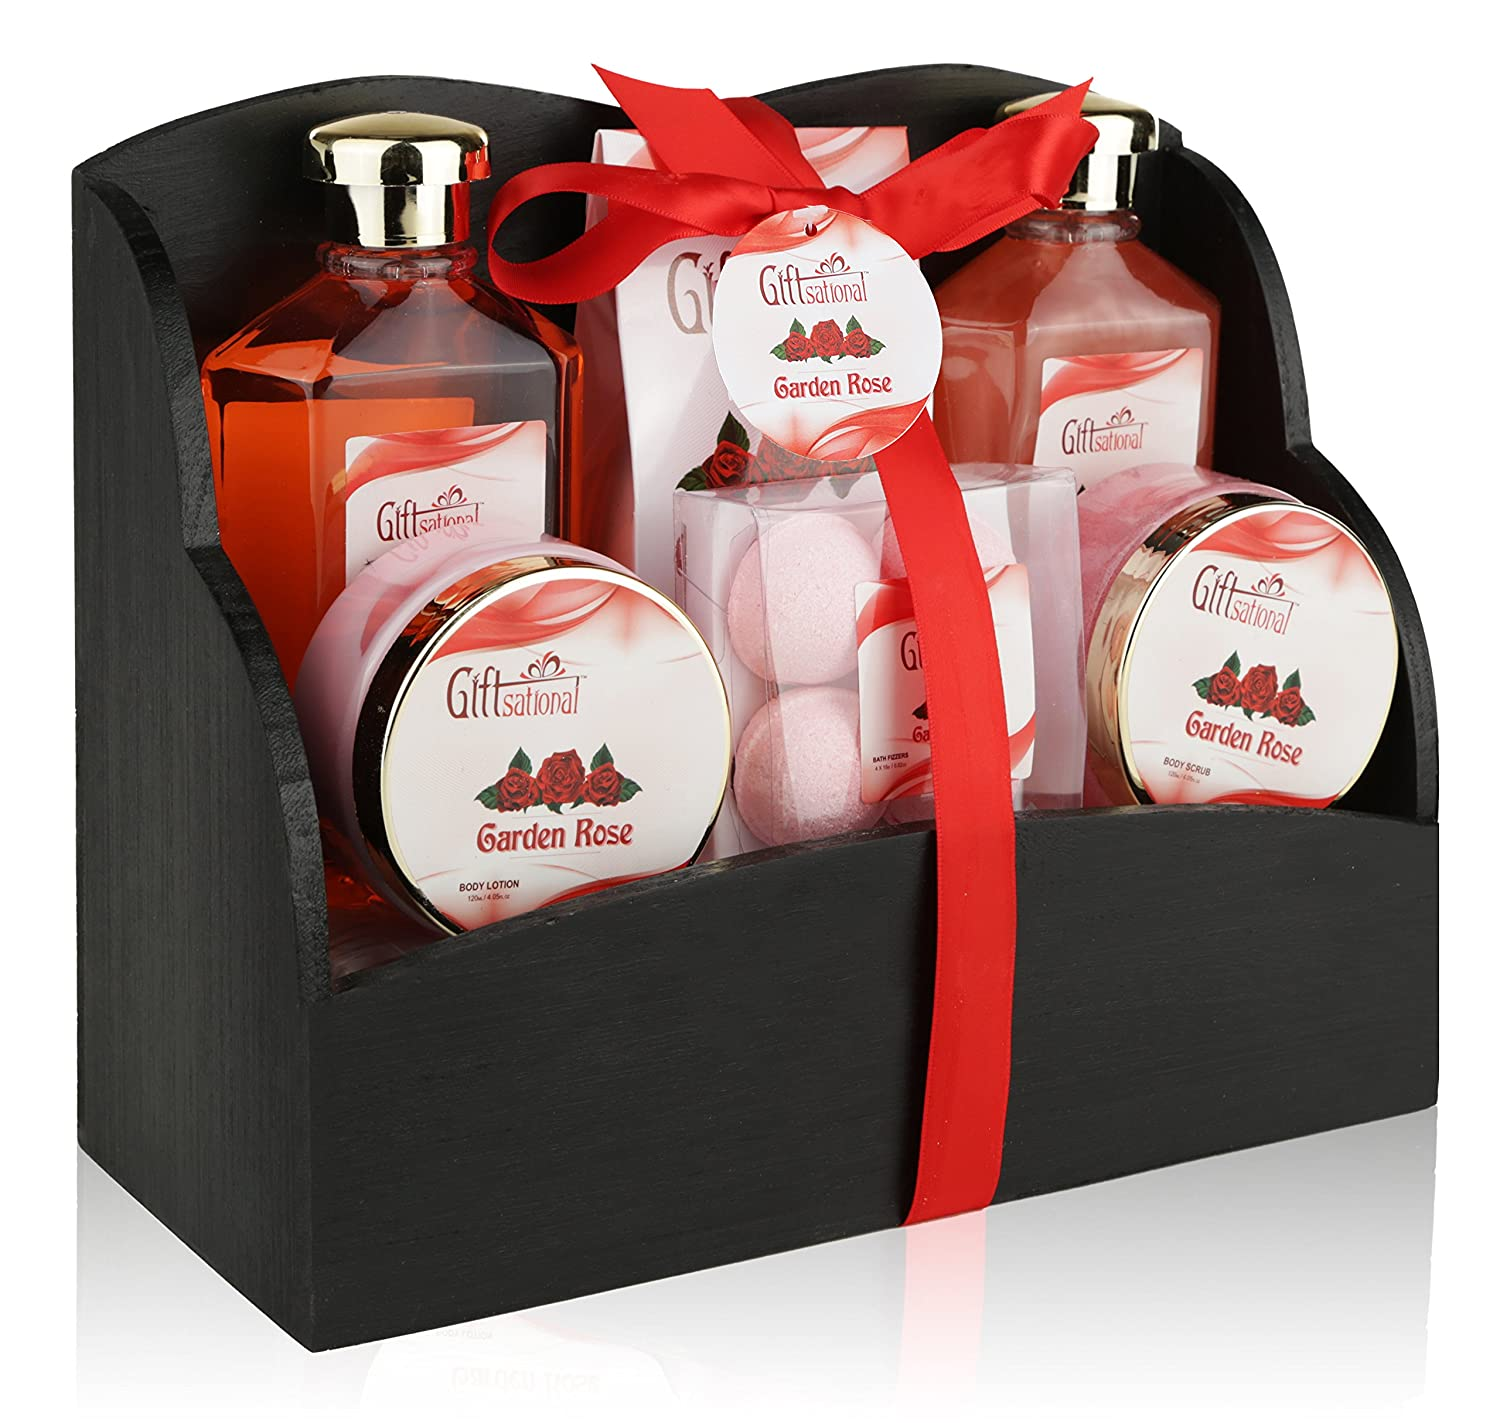 Spa Gift Basket with Heavenly Garden Rose fragrance - Gift set Includes Shower Gel, Bubble Bath, Bath Bombs Bath Salts and More! Great Graduation, Birthday, Anniversary, or Wedding gift for Women! Giftsational EF02